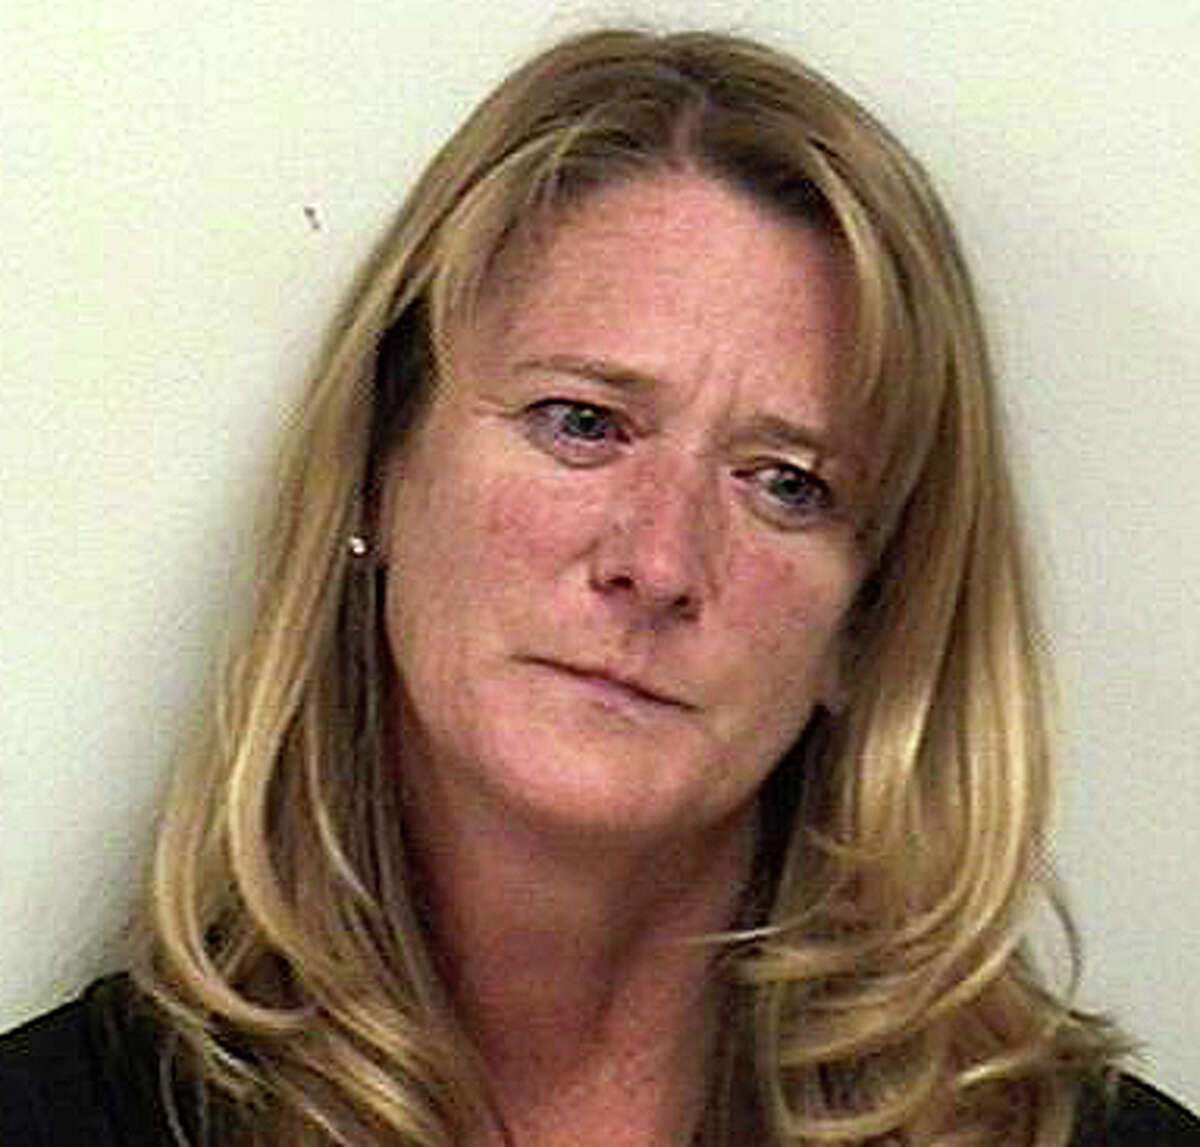 Janette Newman, 47, of Stamford, was charged with driving under the influence after a Post Road East traffic stop.